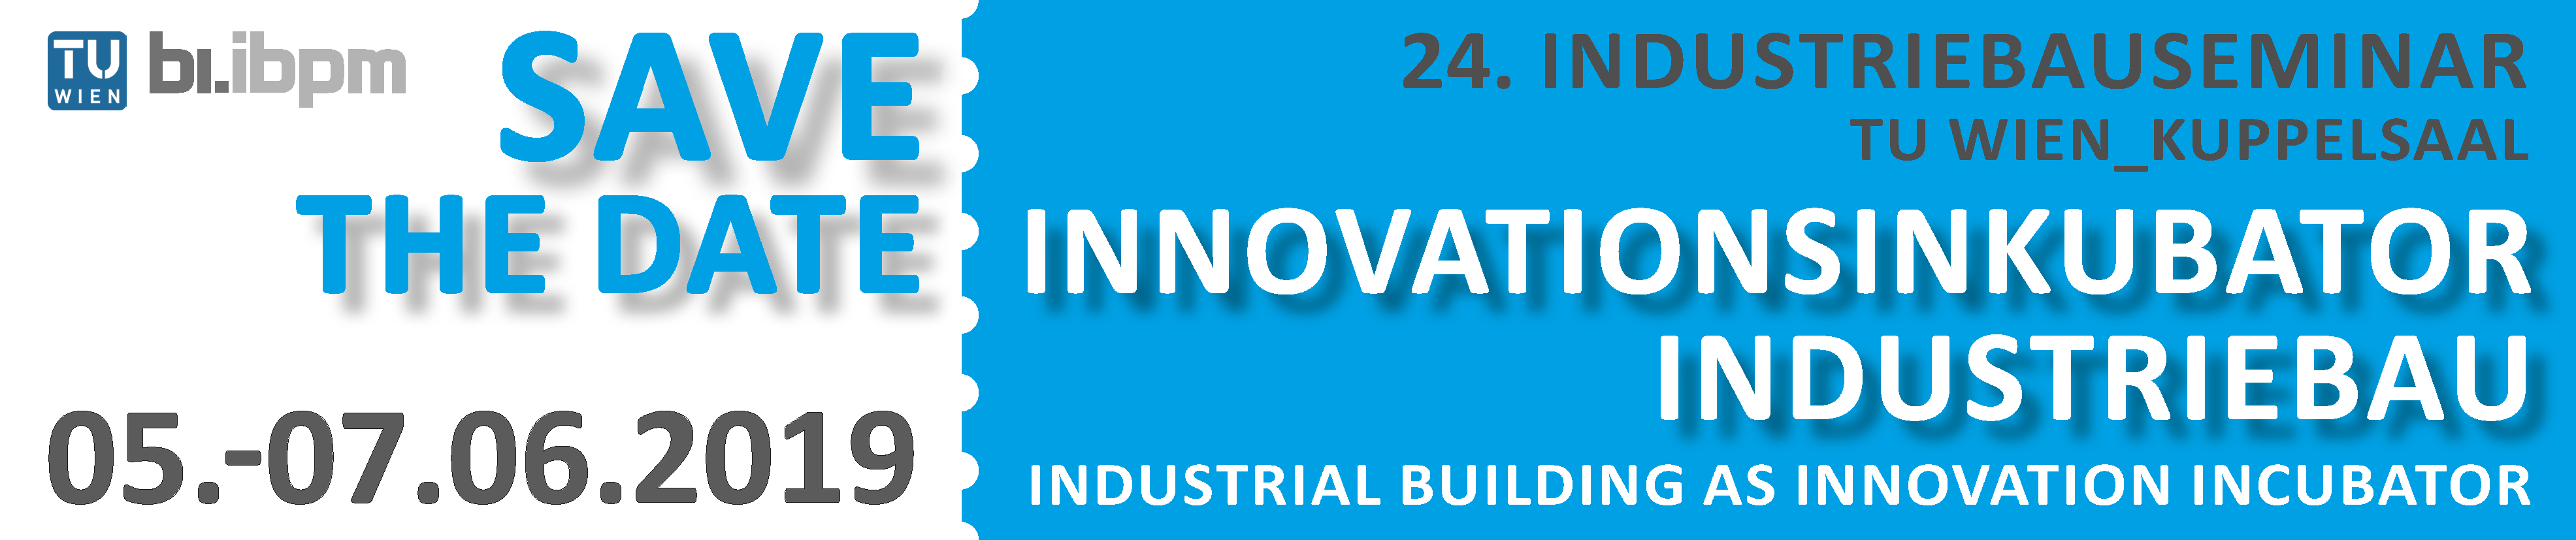 Save the Date: 05.-07.06.2019, Innovationsmotor Industriebau. 24. Industriebauseminar, TU Wien, Kuppelsaal